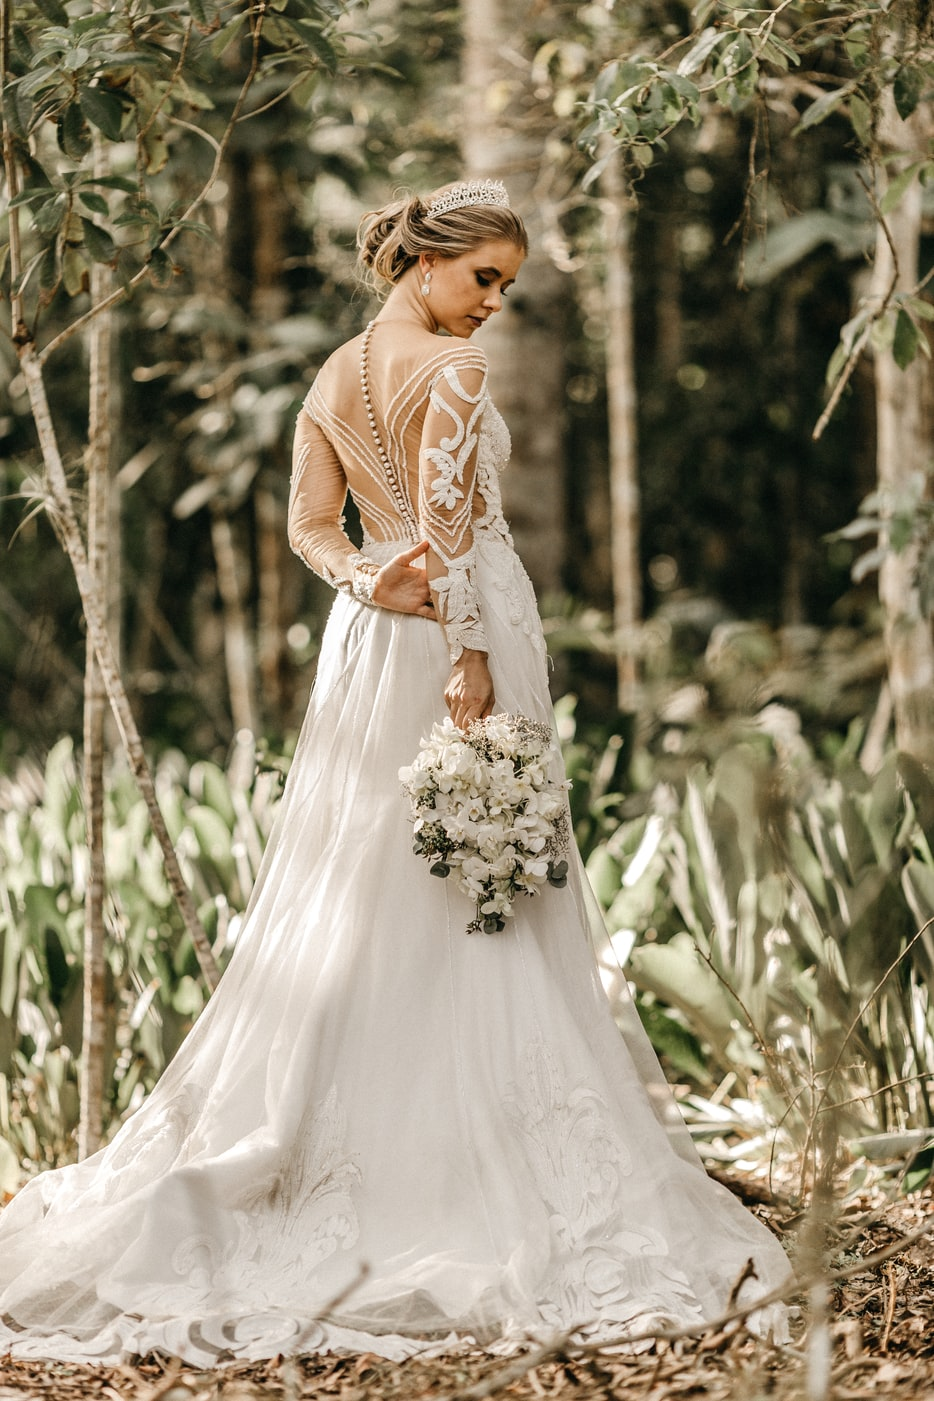 Tips for Buying Your Wedding Dress Online